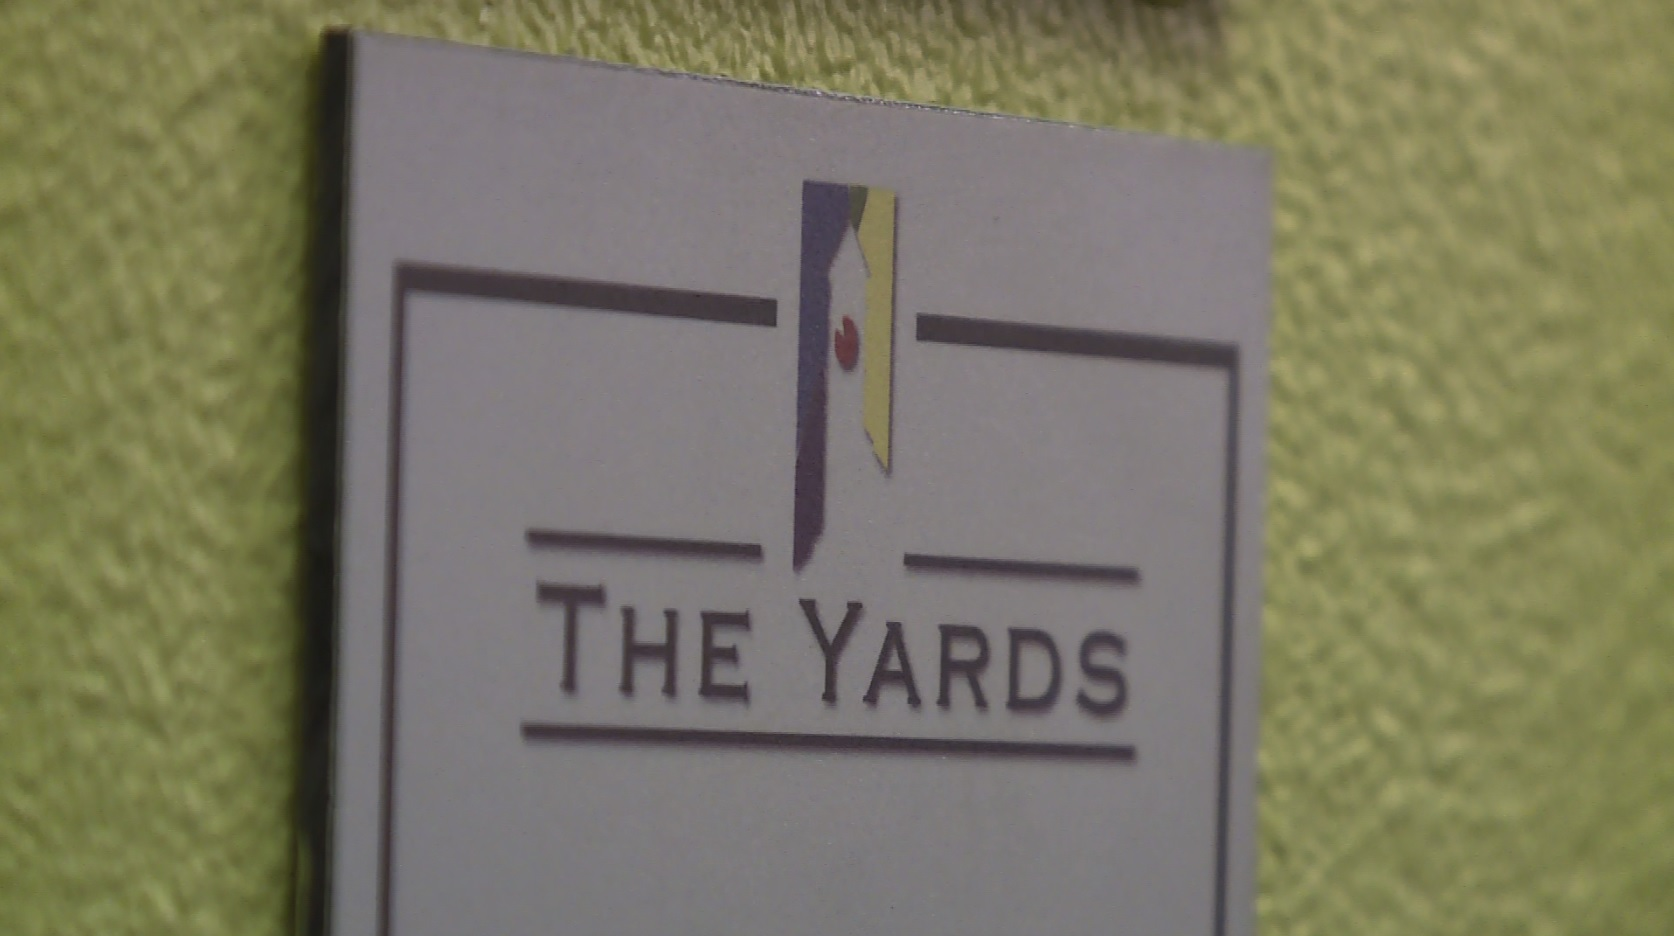 the yards apartments_1560984321065.jpg.jpg